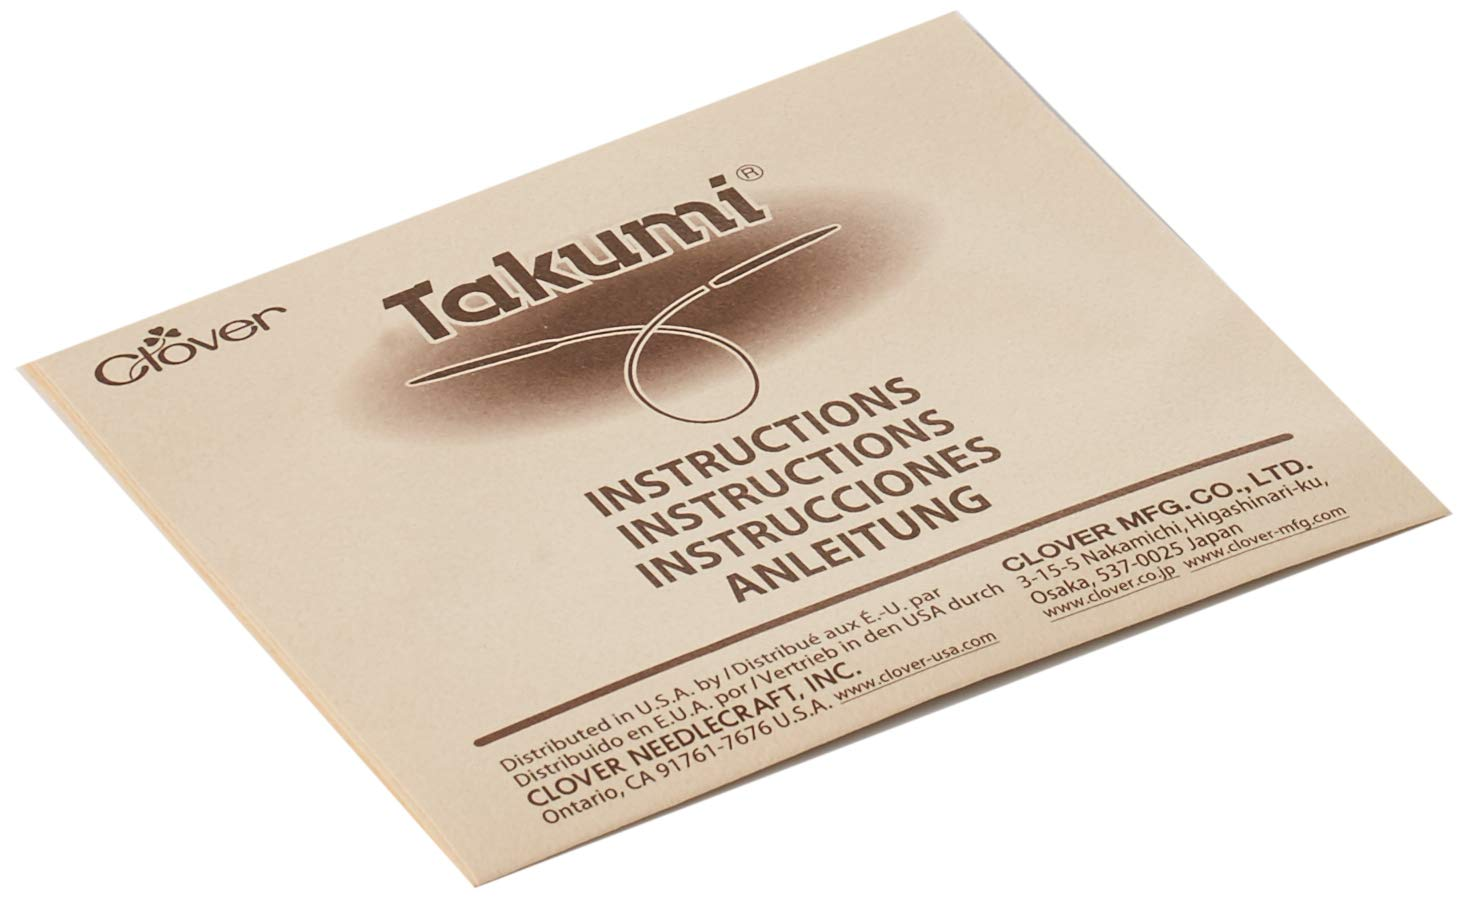 Clover 3683 Interchangeable Circular Knitting Needles Takumi Combo Set by Clover (Image #4)